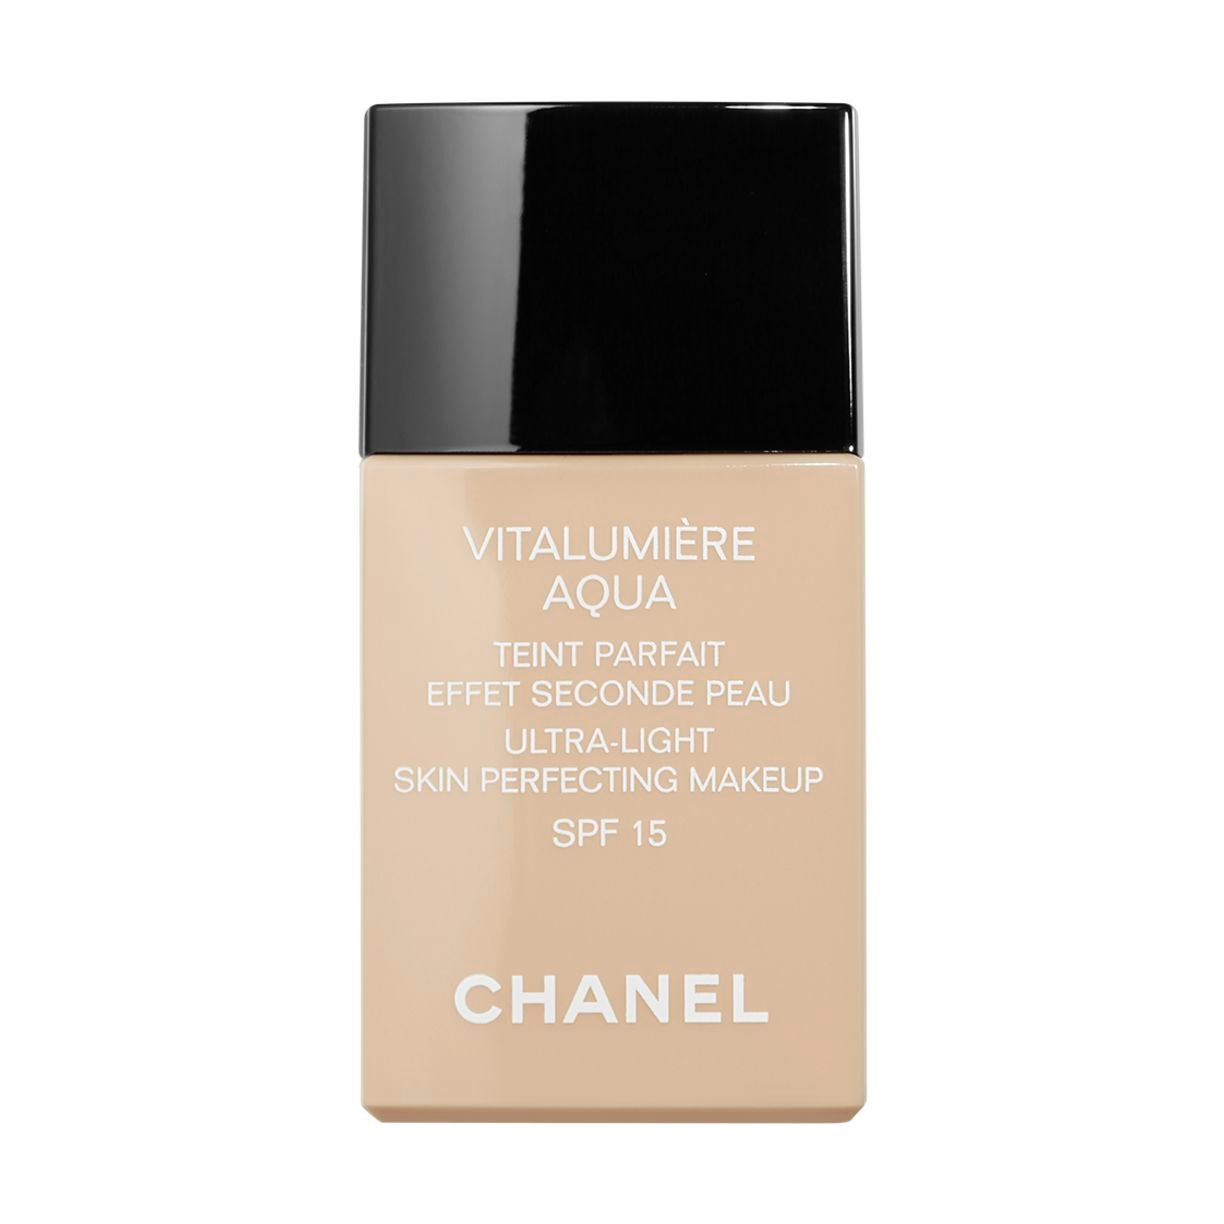 VITALUMIÈRE AQUA ULTRA-LIGHT SKIN PERFECTING MAKEUP SPF 15 20 - BEIGE